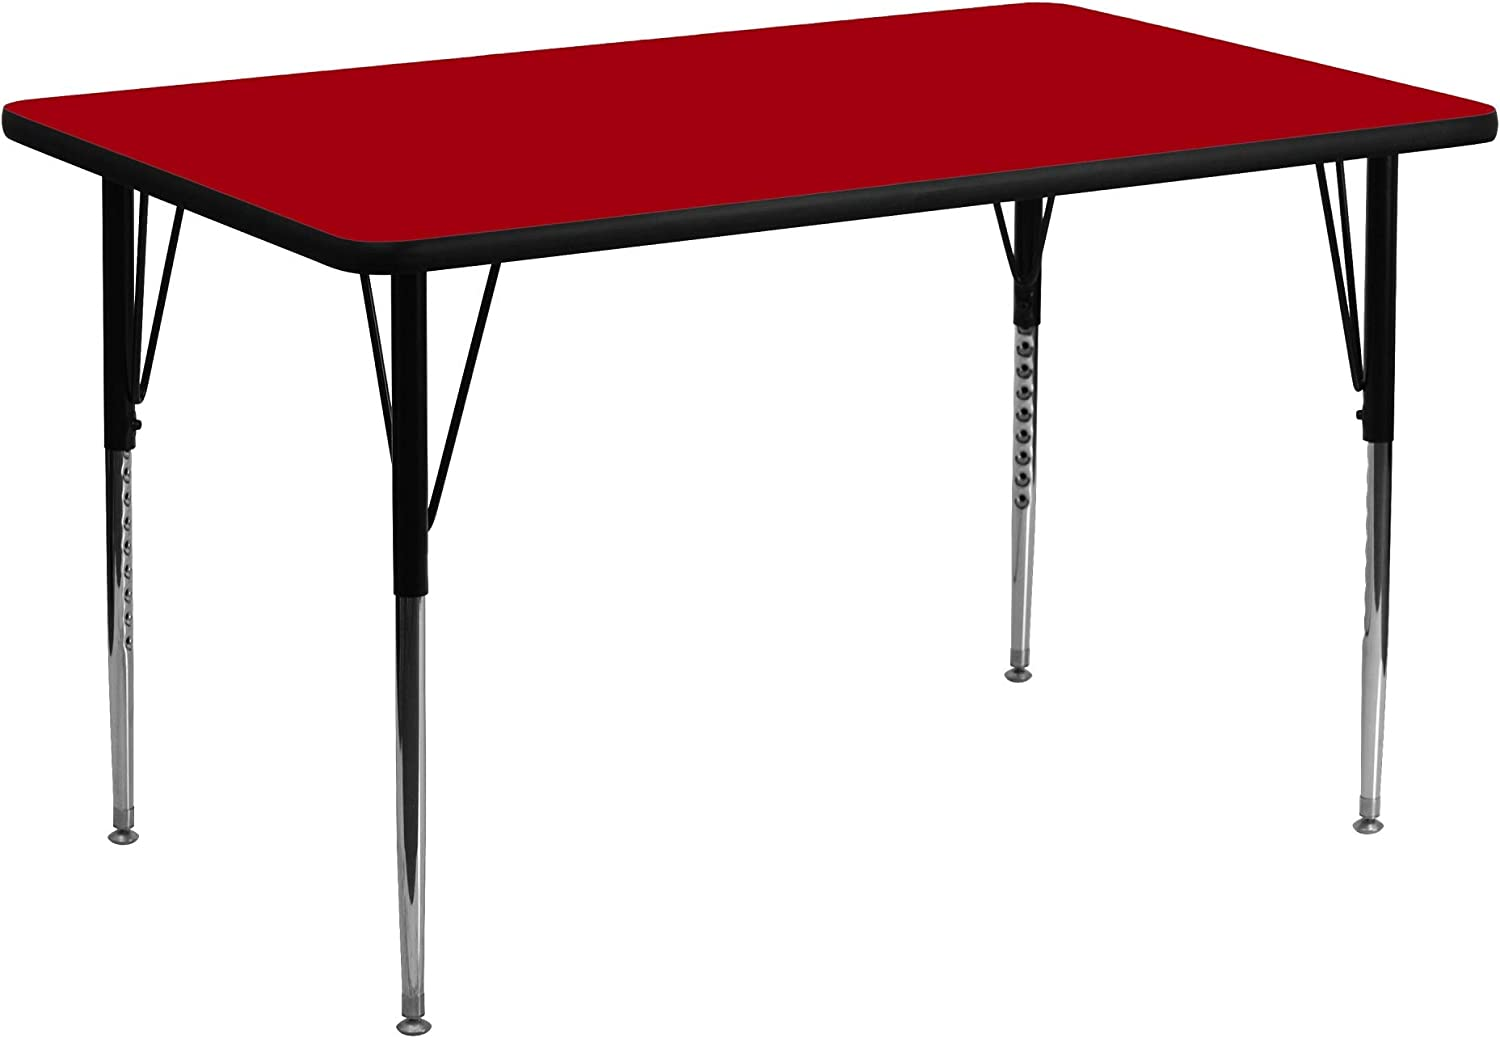 F/&F Furniture Group Set of 5 Round Red Plastic Height Adjustable Activity Table and Chairs 33